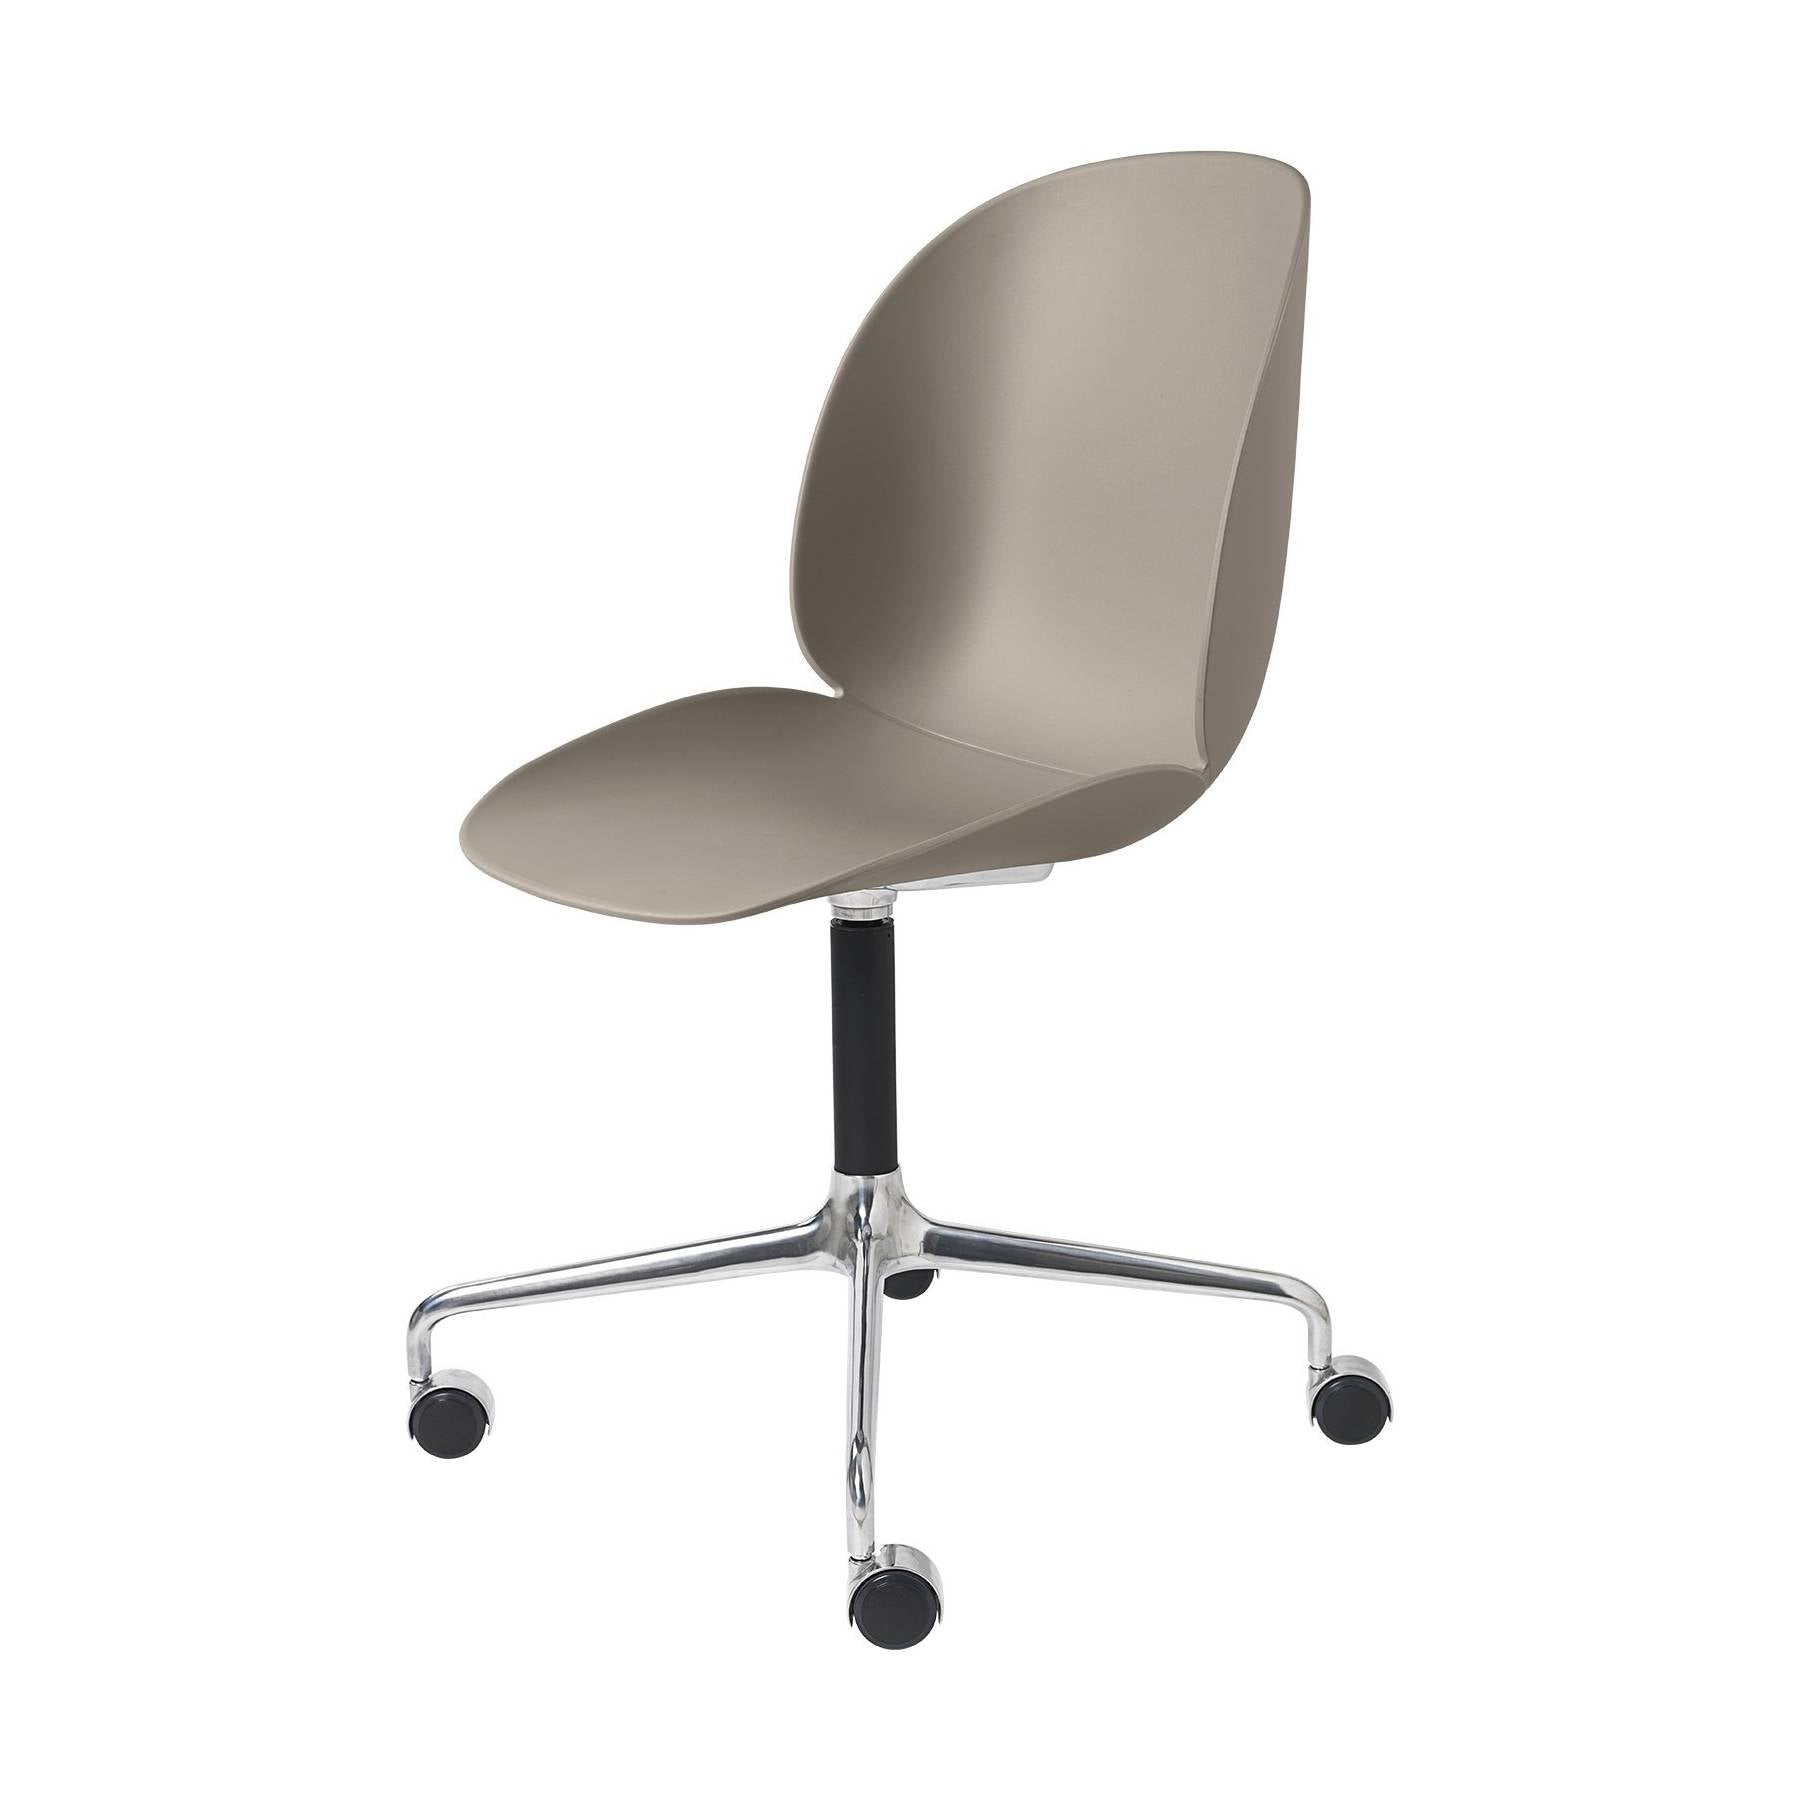 Beetle Meeting Chair: 4-Star Swivel Base With Castors: New Beige + Polished Aluminum + Black Matte Base